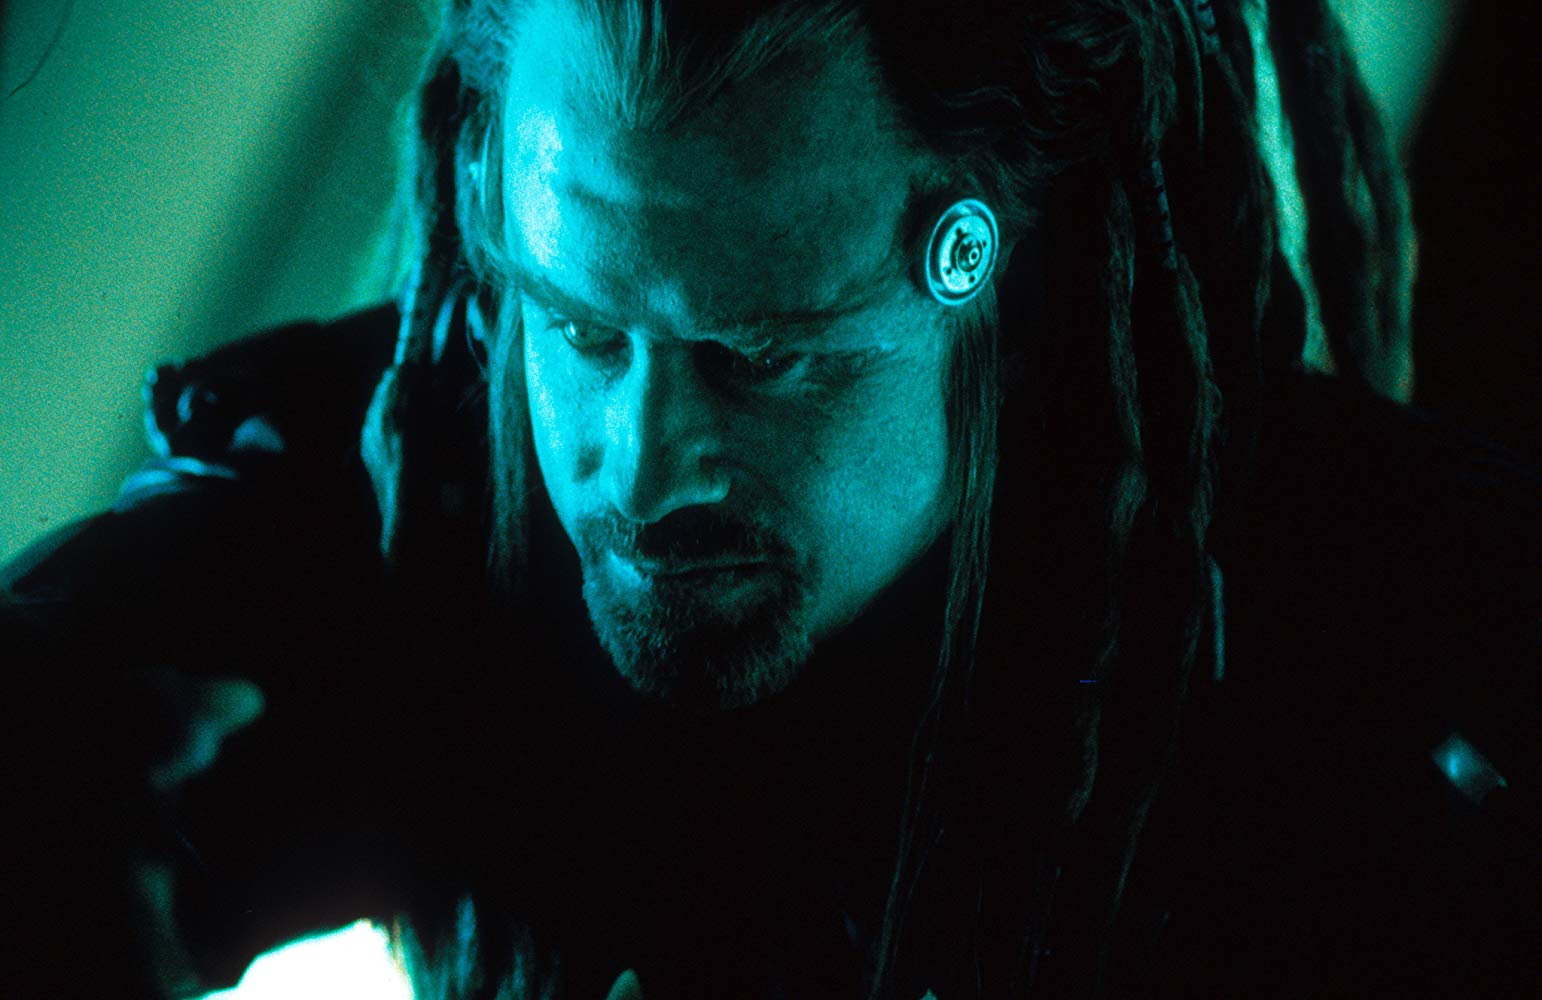 John Travolta as the Psychlo leader Terl in Battlefield Earth: A Saga of the Year 3000 (2000)